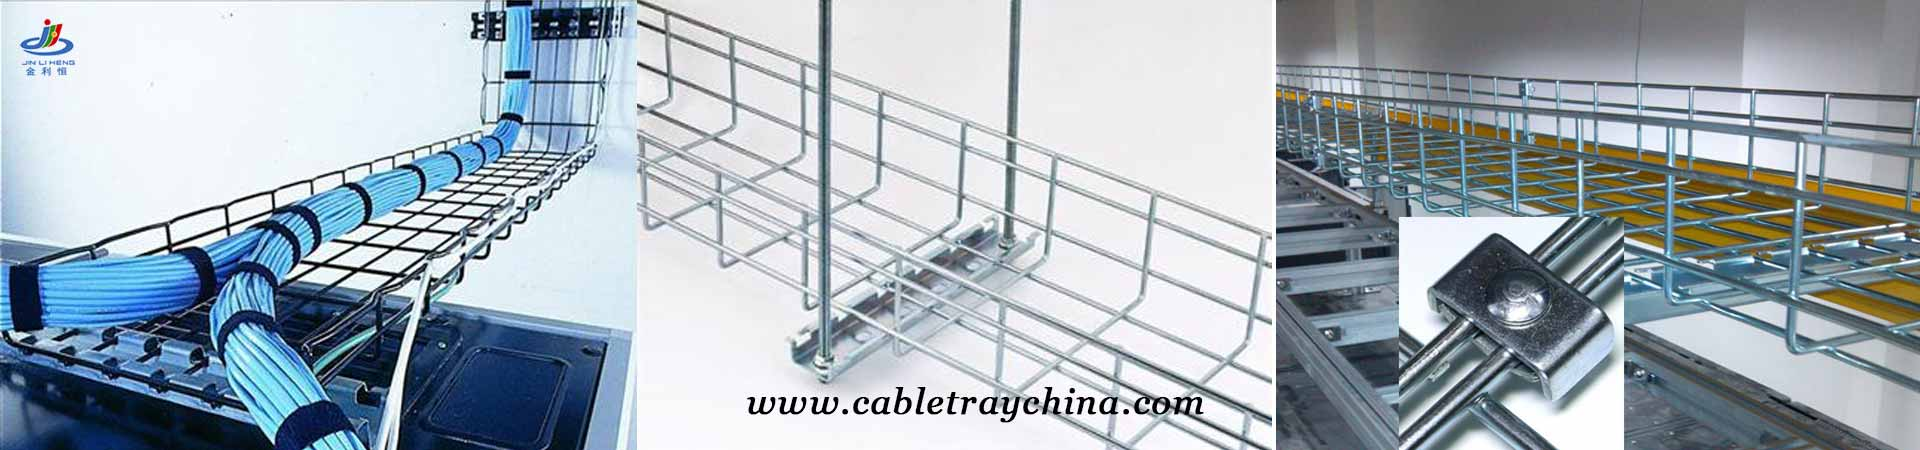 stainless steel wire mesh cable tray manufacturer